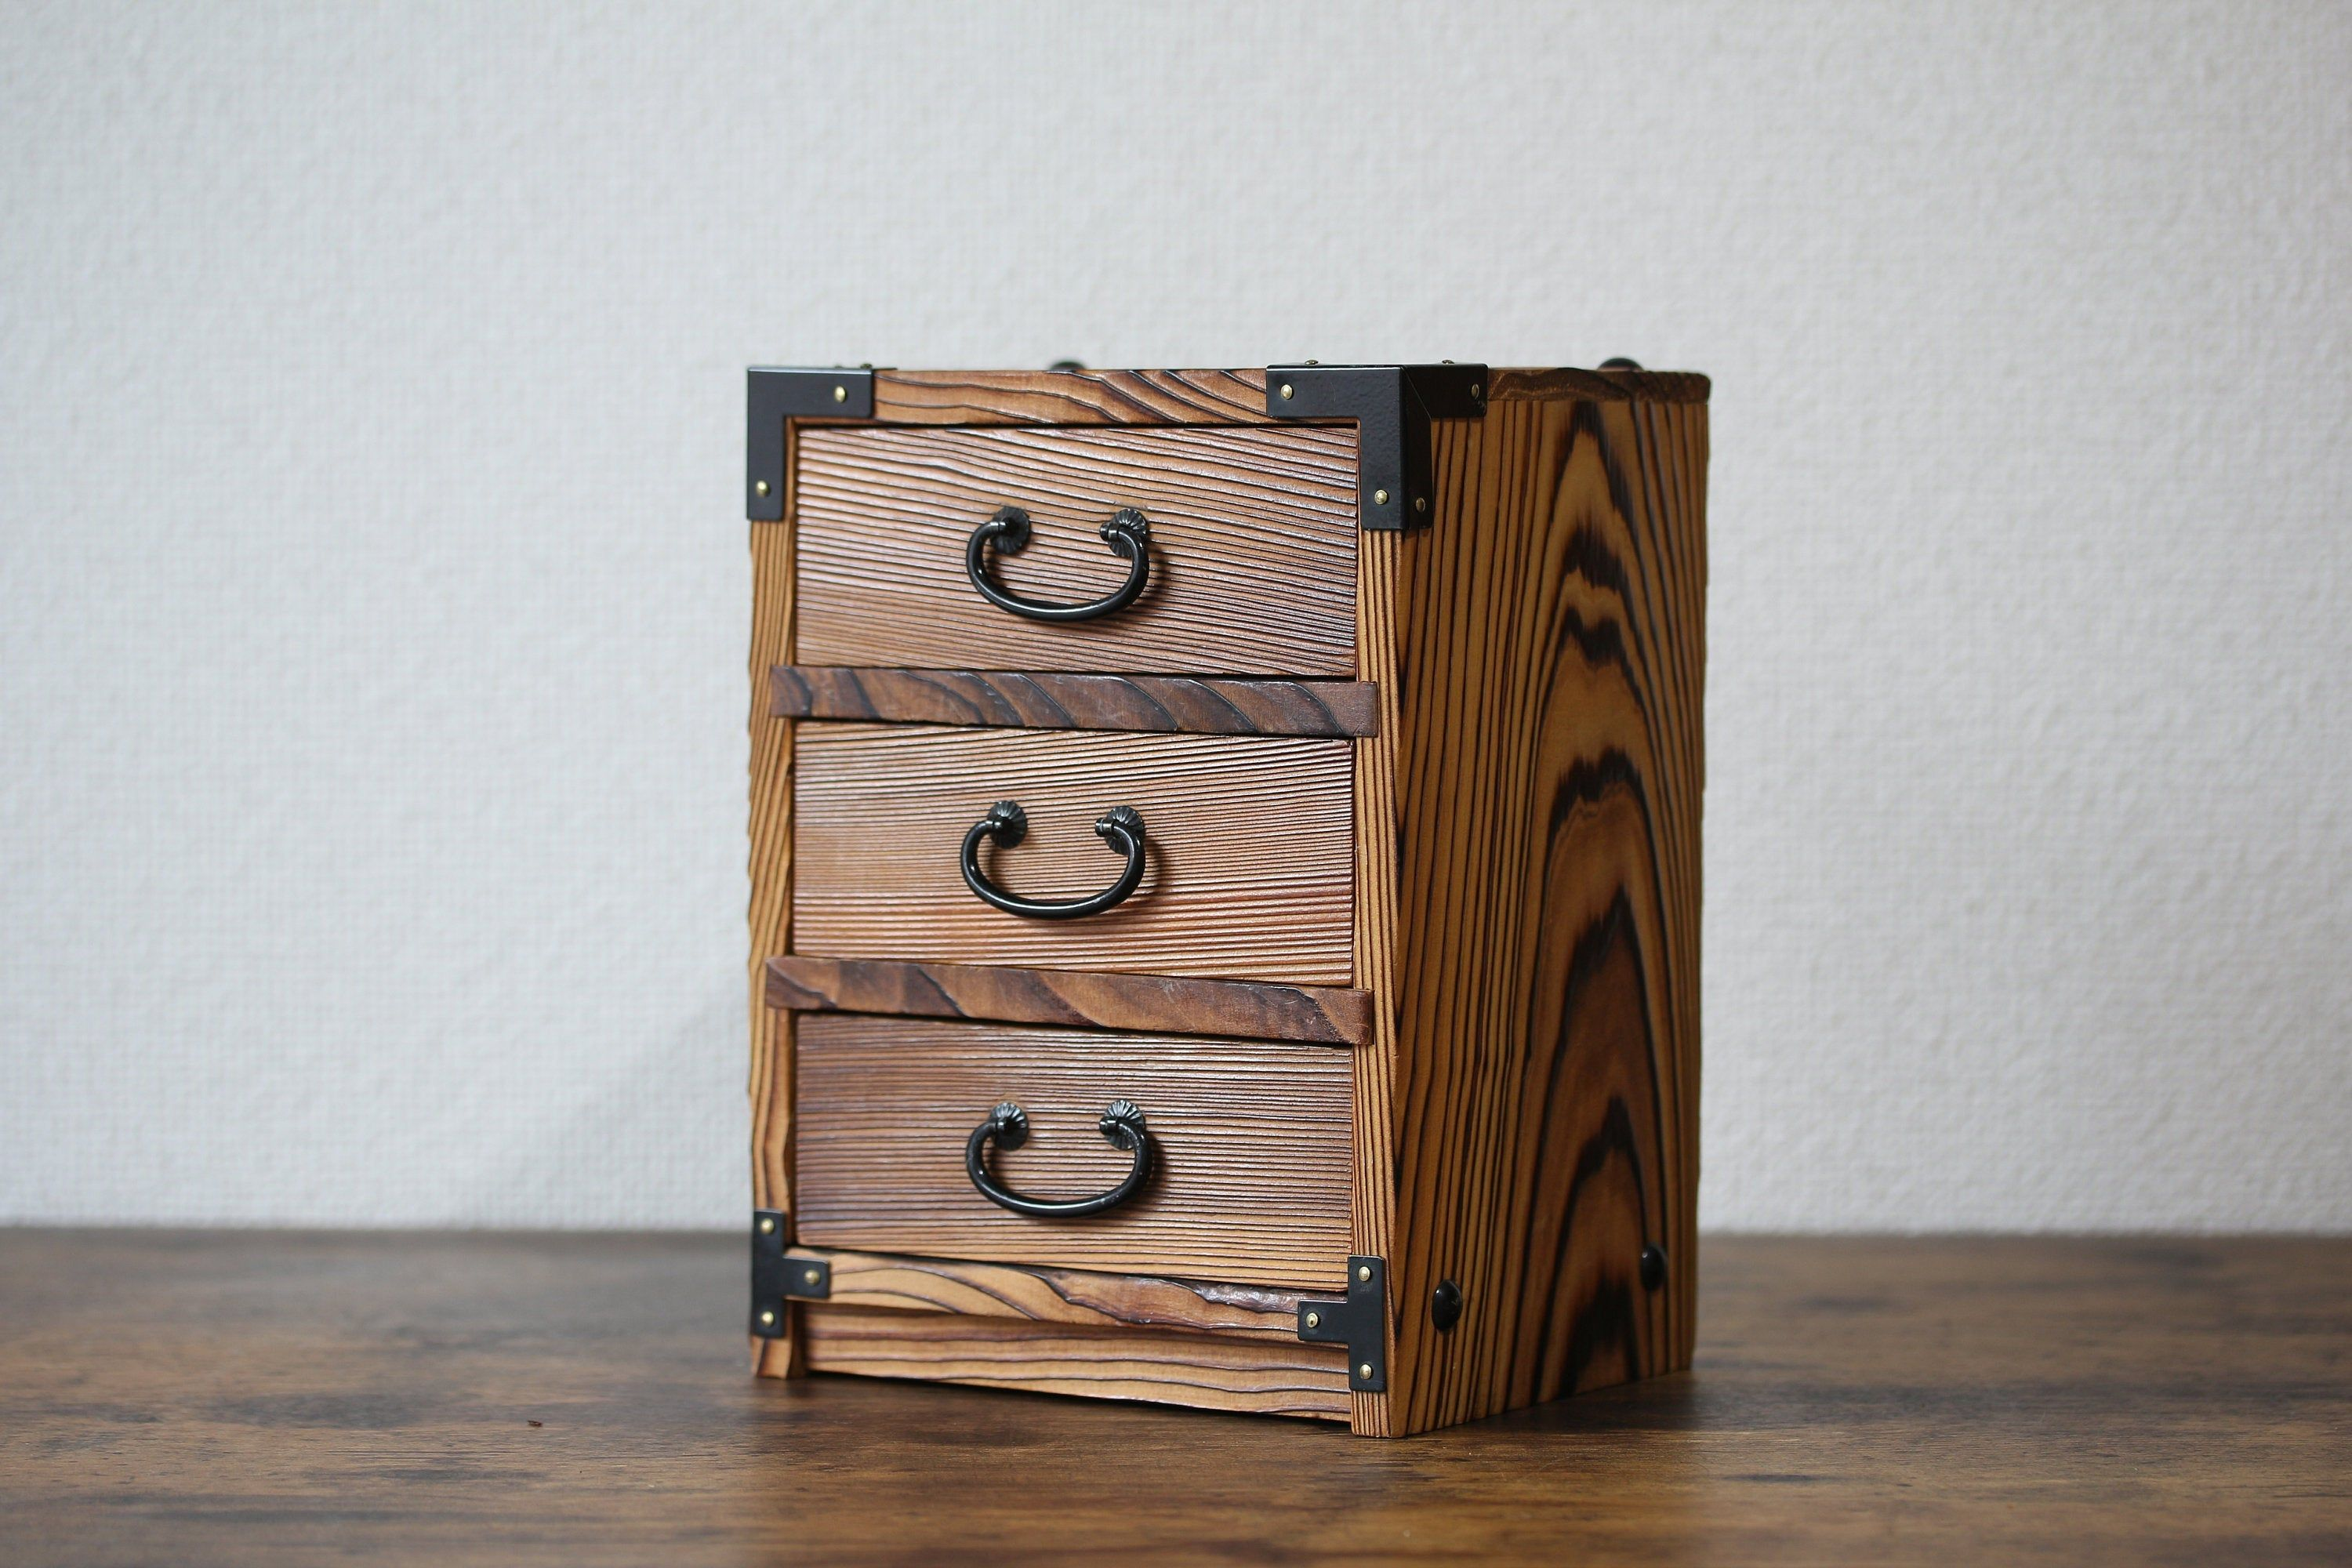 Japanese Kodansu Small Wood Drawer Japanese Wooden Chest Wooden Storage Box Trinket Box Small Cabinet Jewelry Box Min Wooden Storage Wooden Chest Antique Boxes